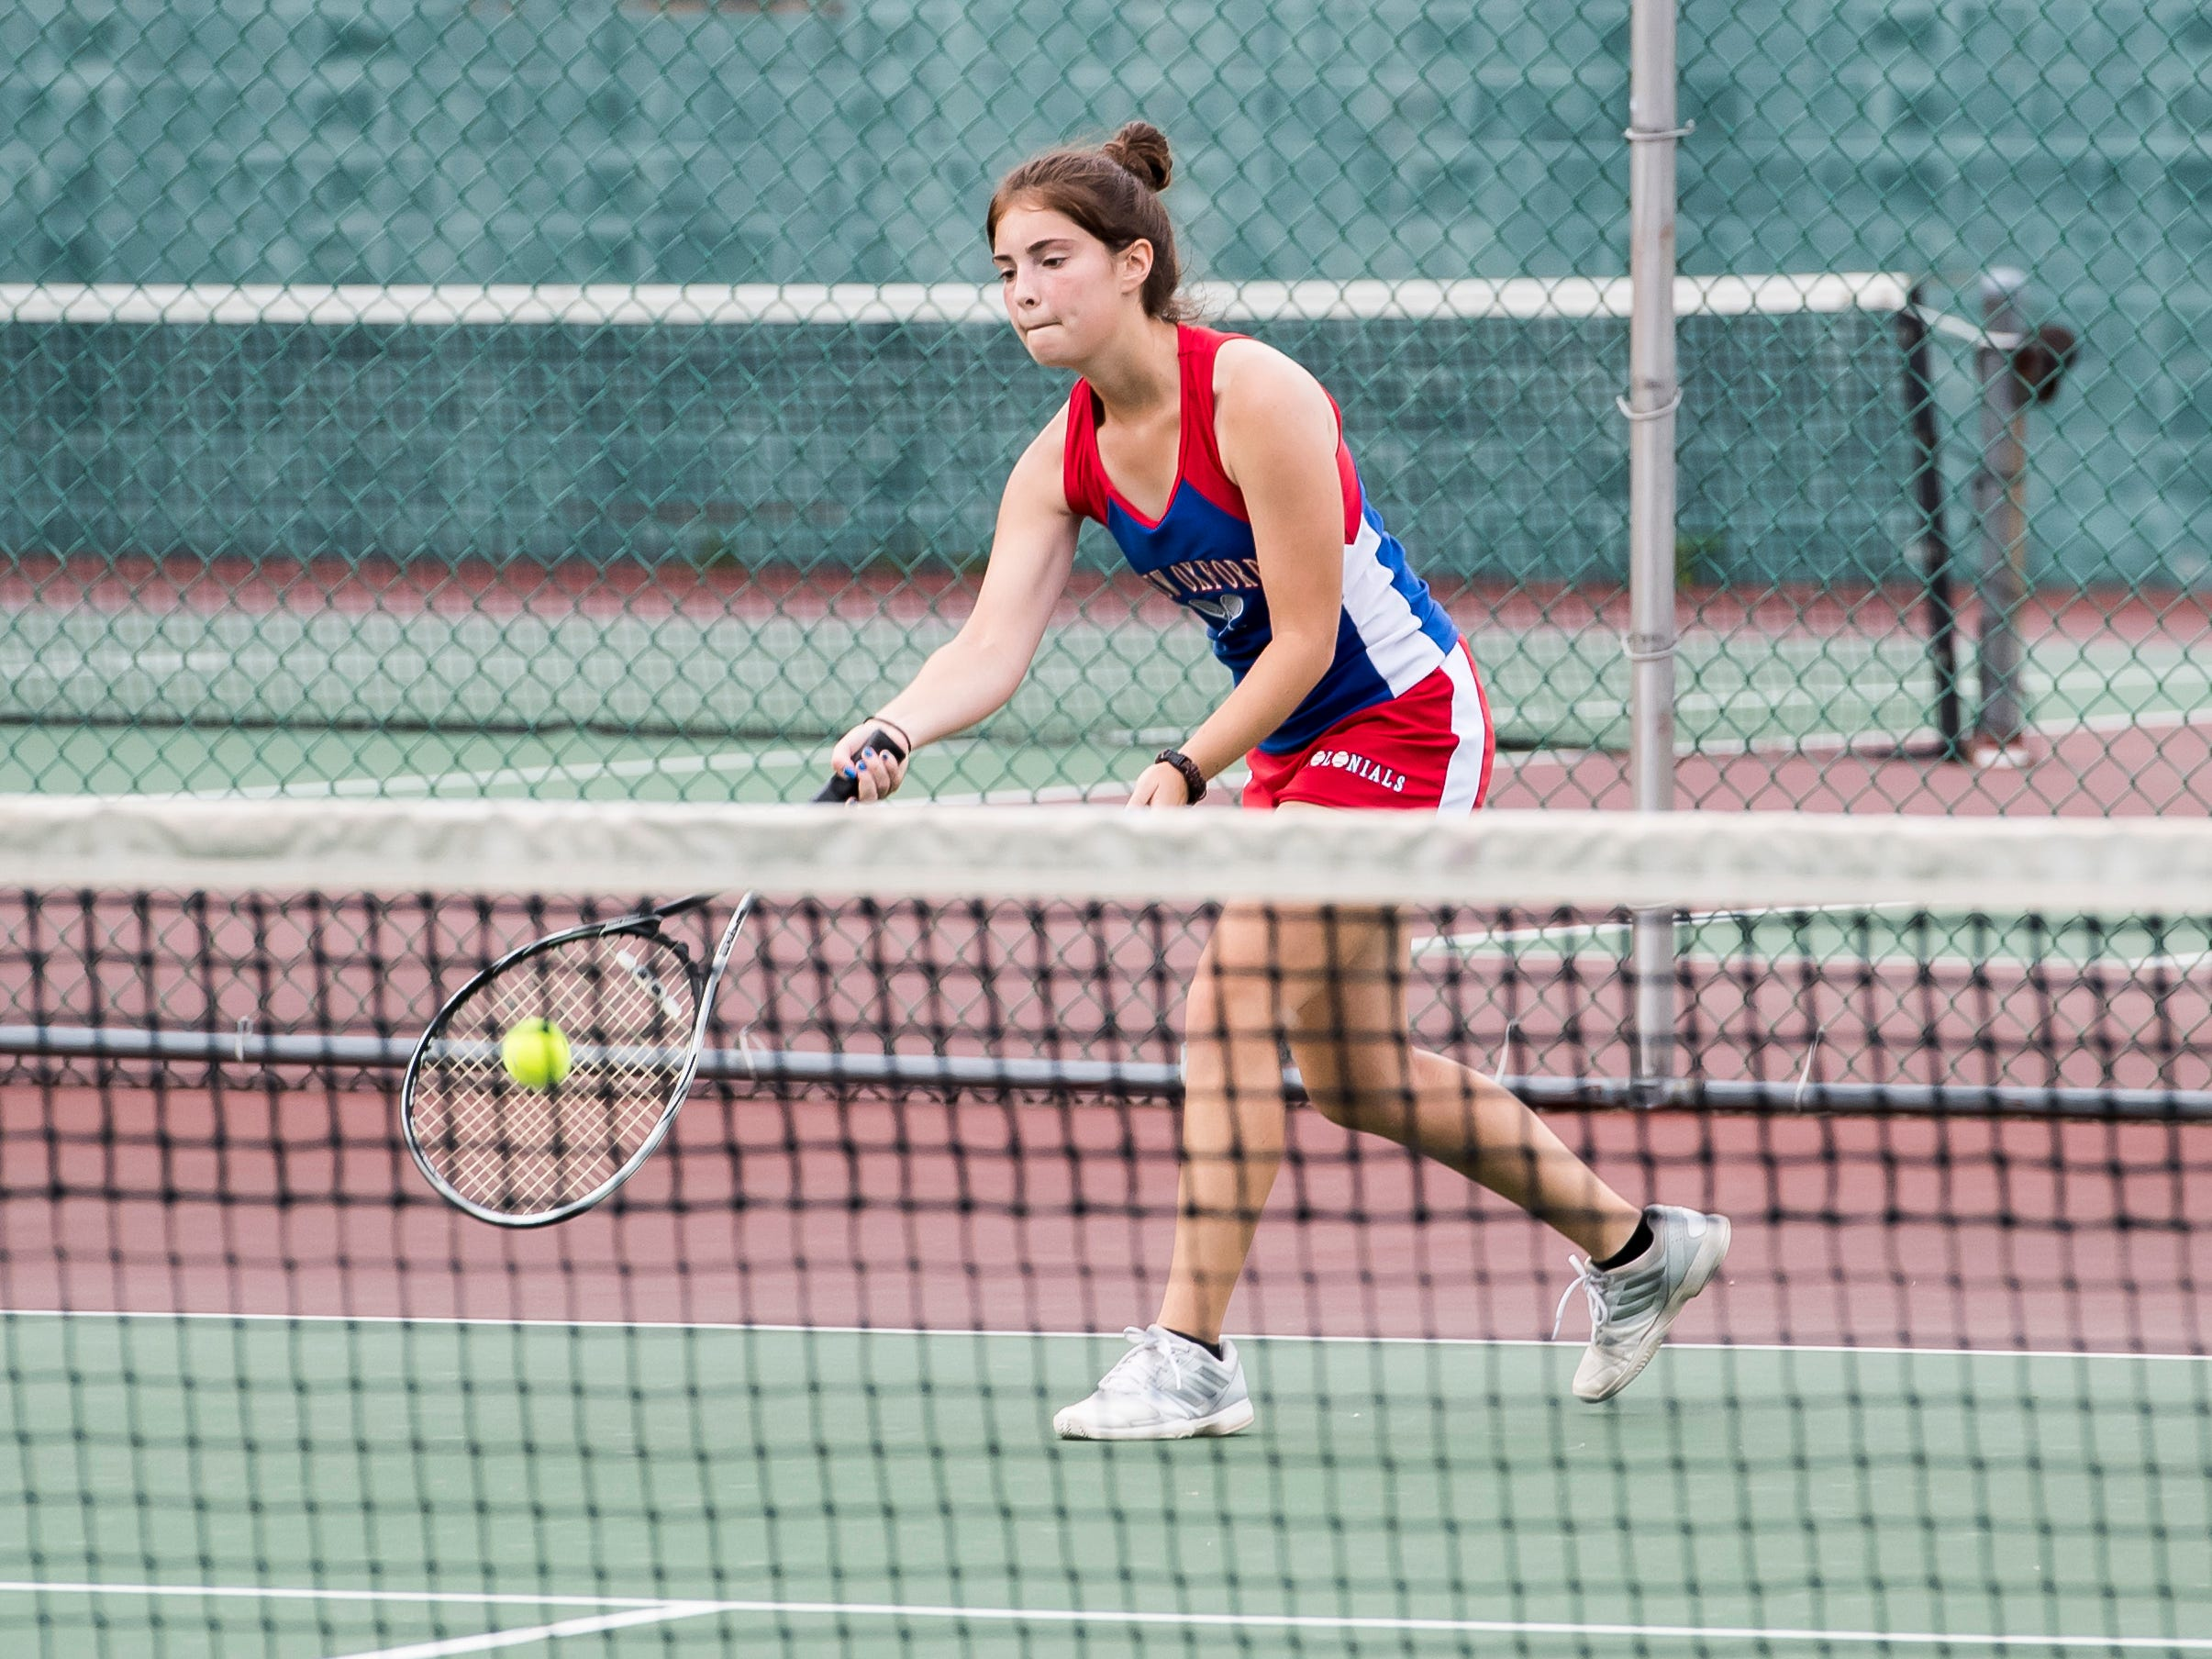 New Oxford's Maddie Markle returns the ball to South Western's Karen Yang in the No. 3 singles match on Tuesday, October 2, 2018.